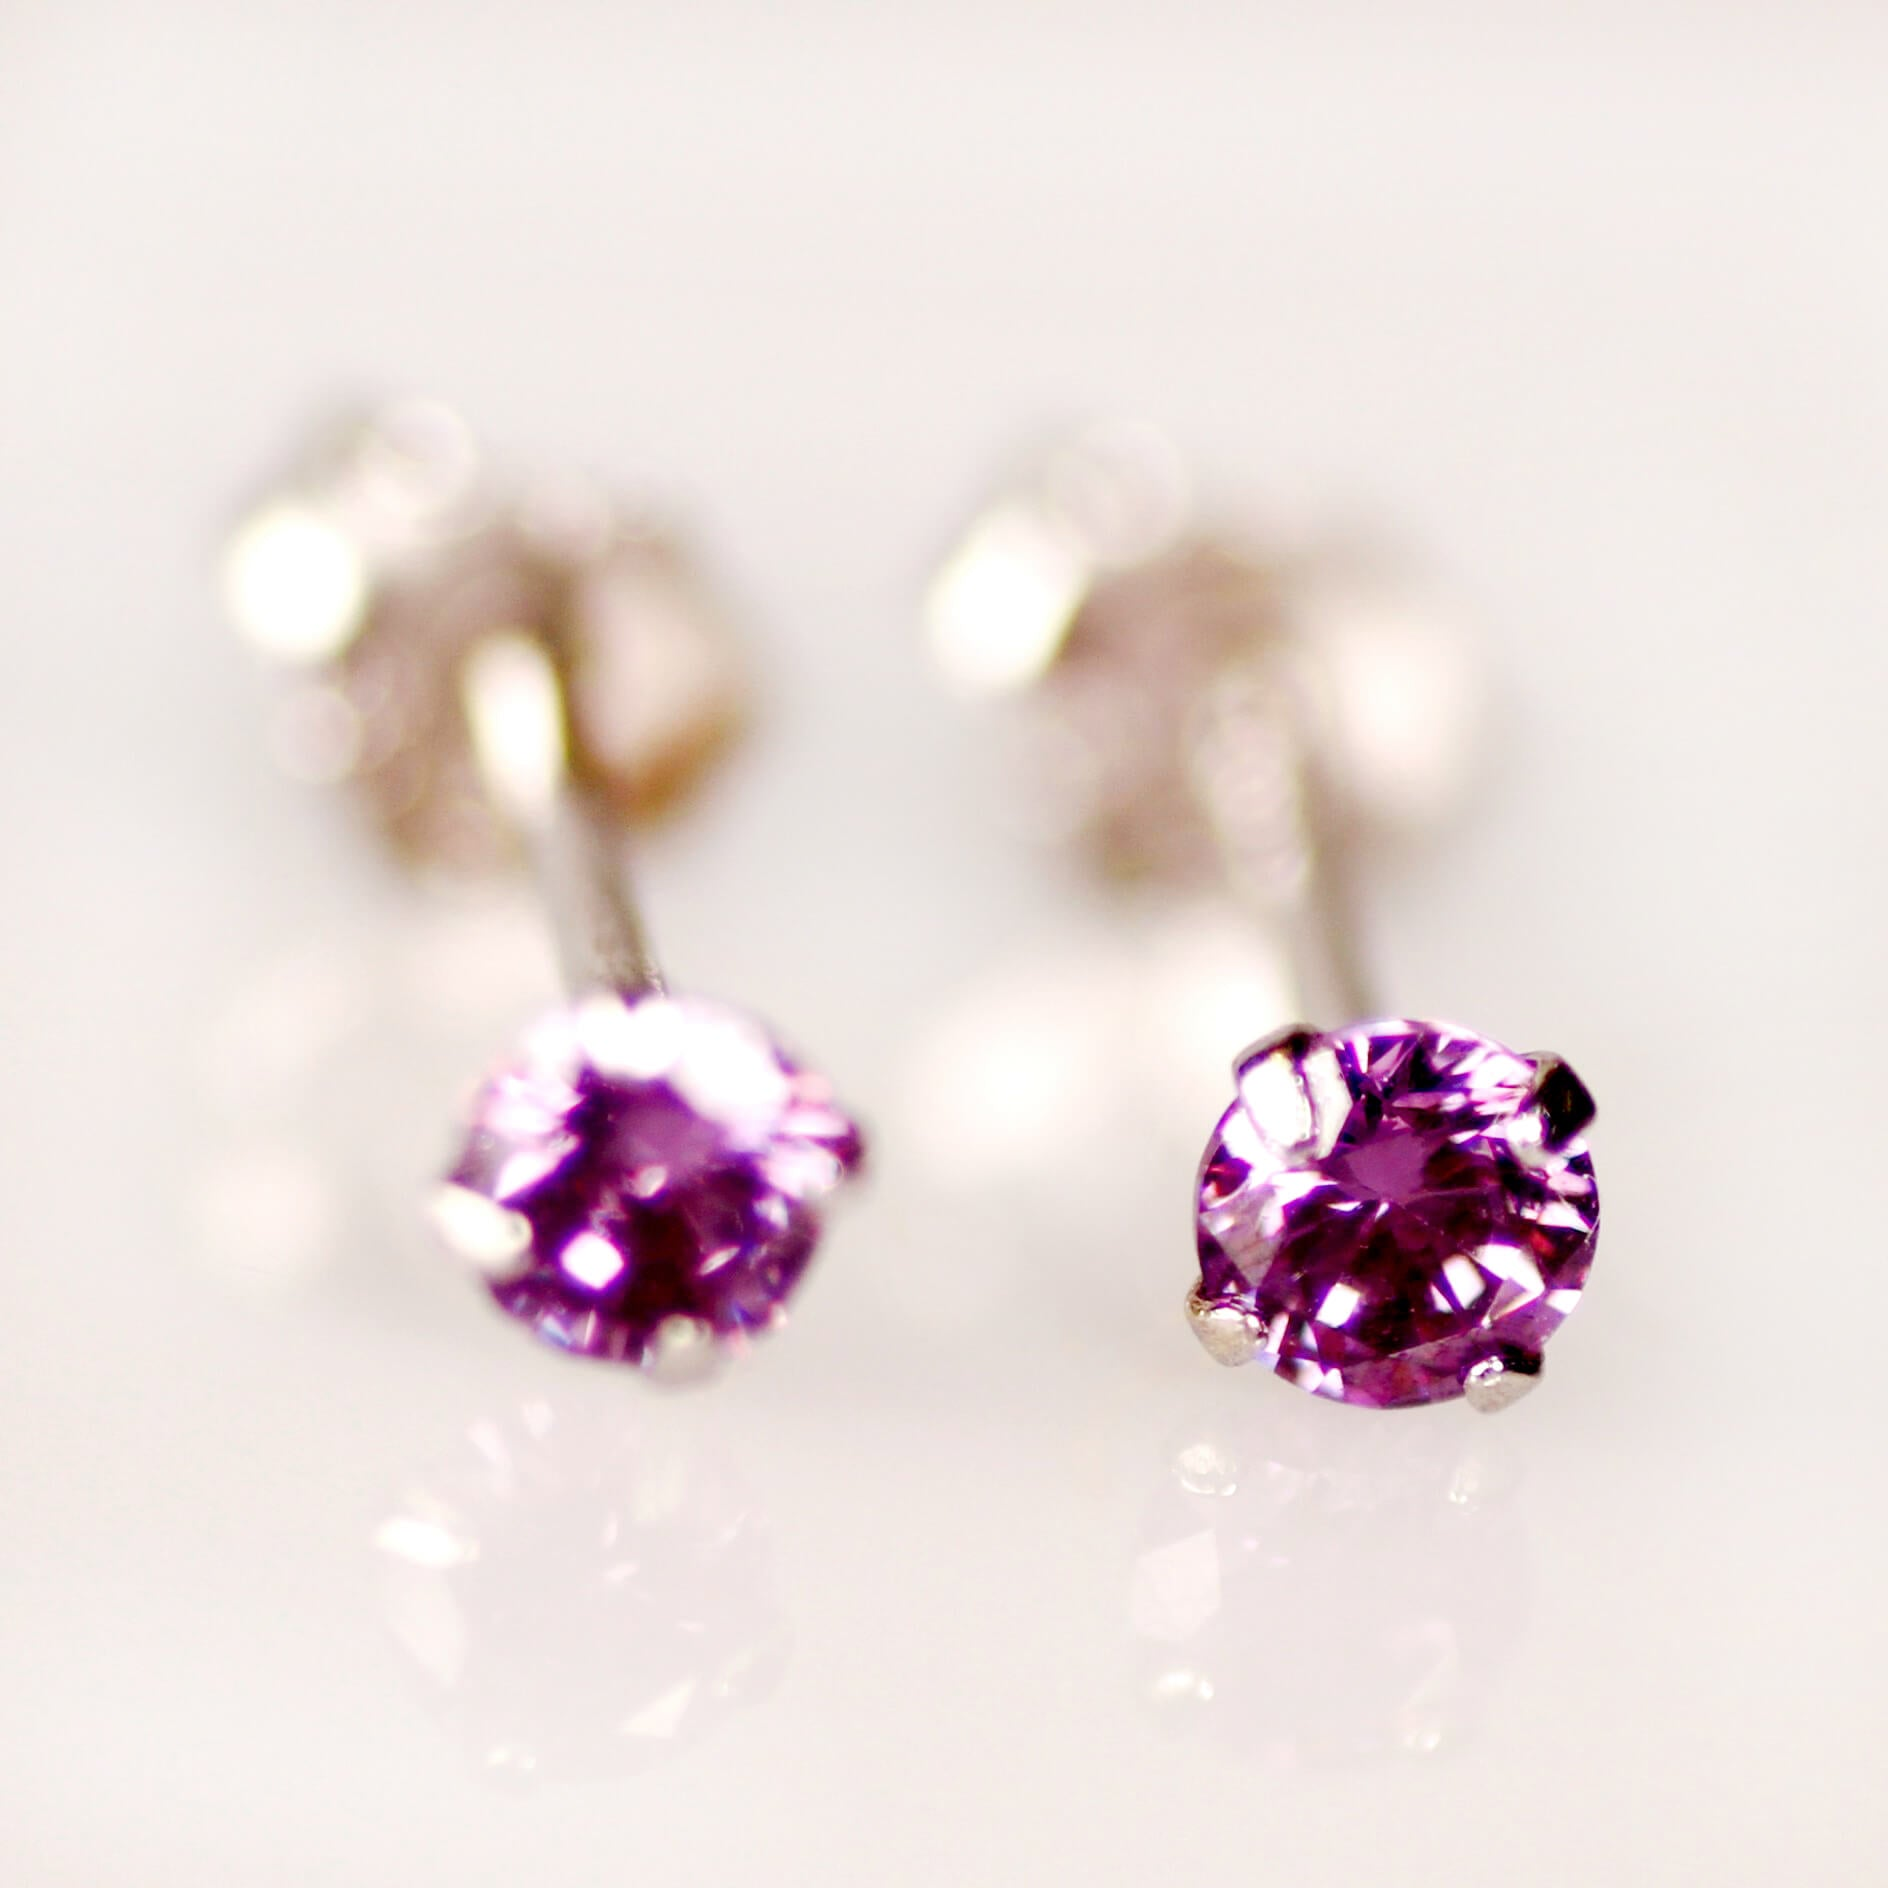 Tiny CZ stud earrings